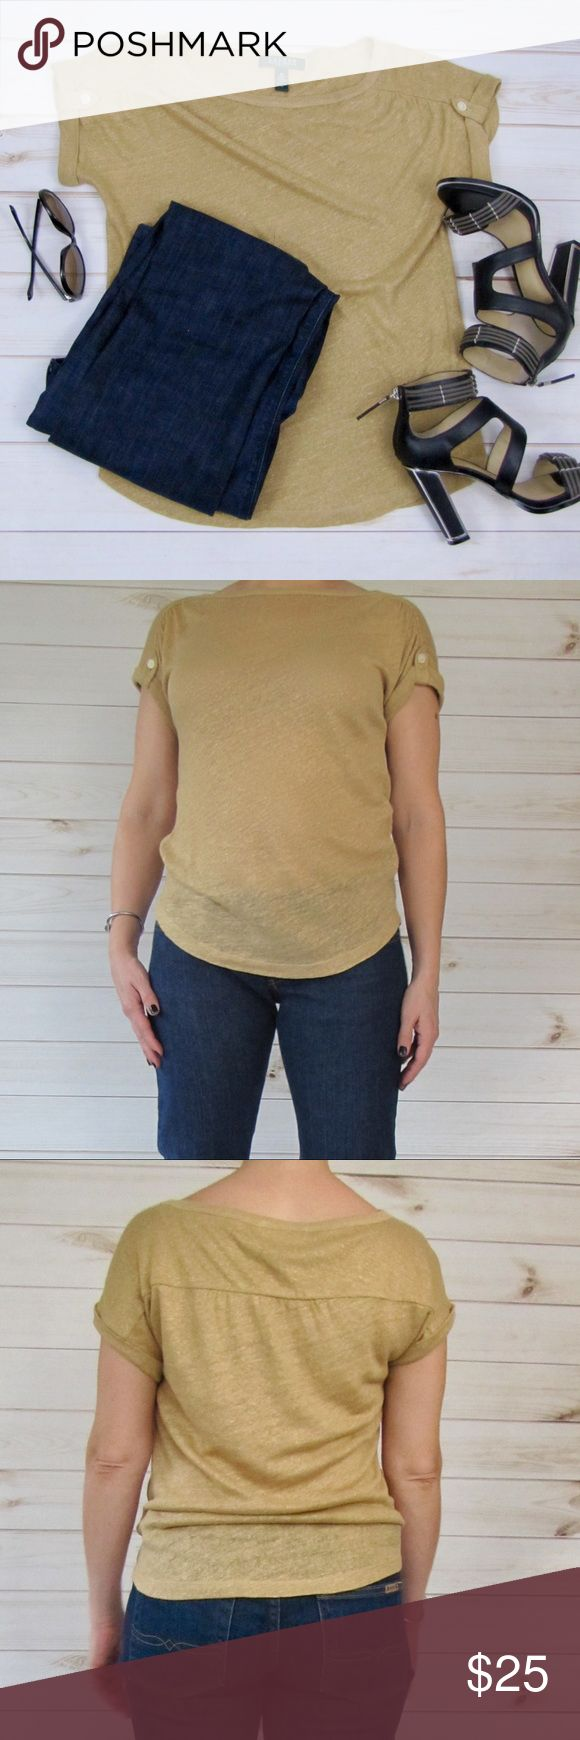 """Ralph Lauren short-sleeved metallic gold top Lauren Ralph Lauren short-sleeved crew-neck gold linen jersey top features roll-up sleeves with buttons. 100% linen fabric makes the piece breathable and easy to wear. So versatile--works equally well paired with jeans or as a shell under a suit.   Measurements are approximate, taken while garment is lying flat:  Bust (armpit to armpit) = 17""""  Length (shoulder to hem) = 21"""" Lauren Ralph Lauren Tops"""